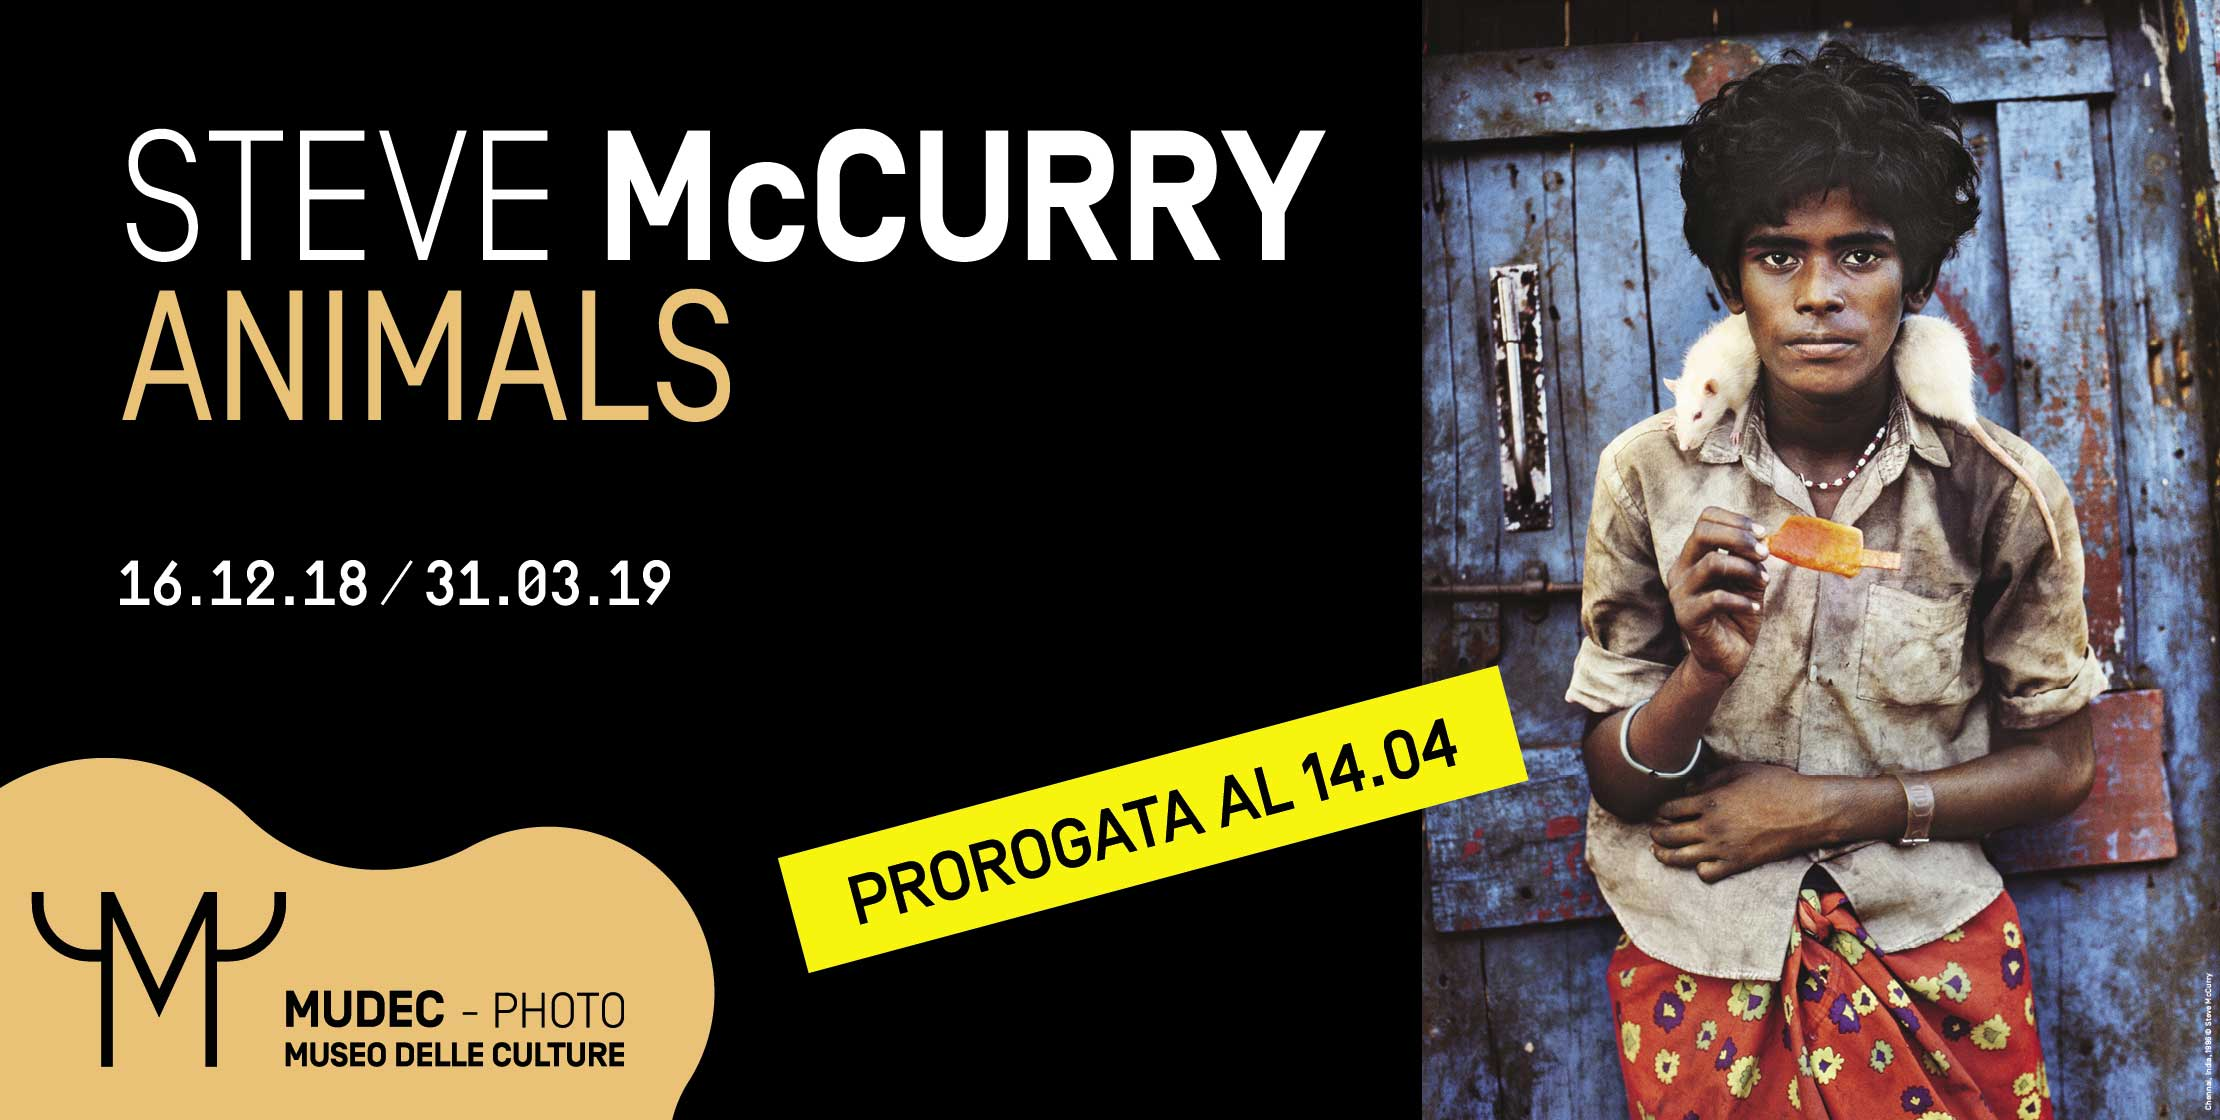 McCurry-HP-2220x1120-0414